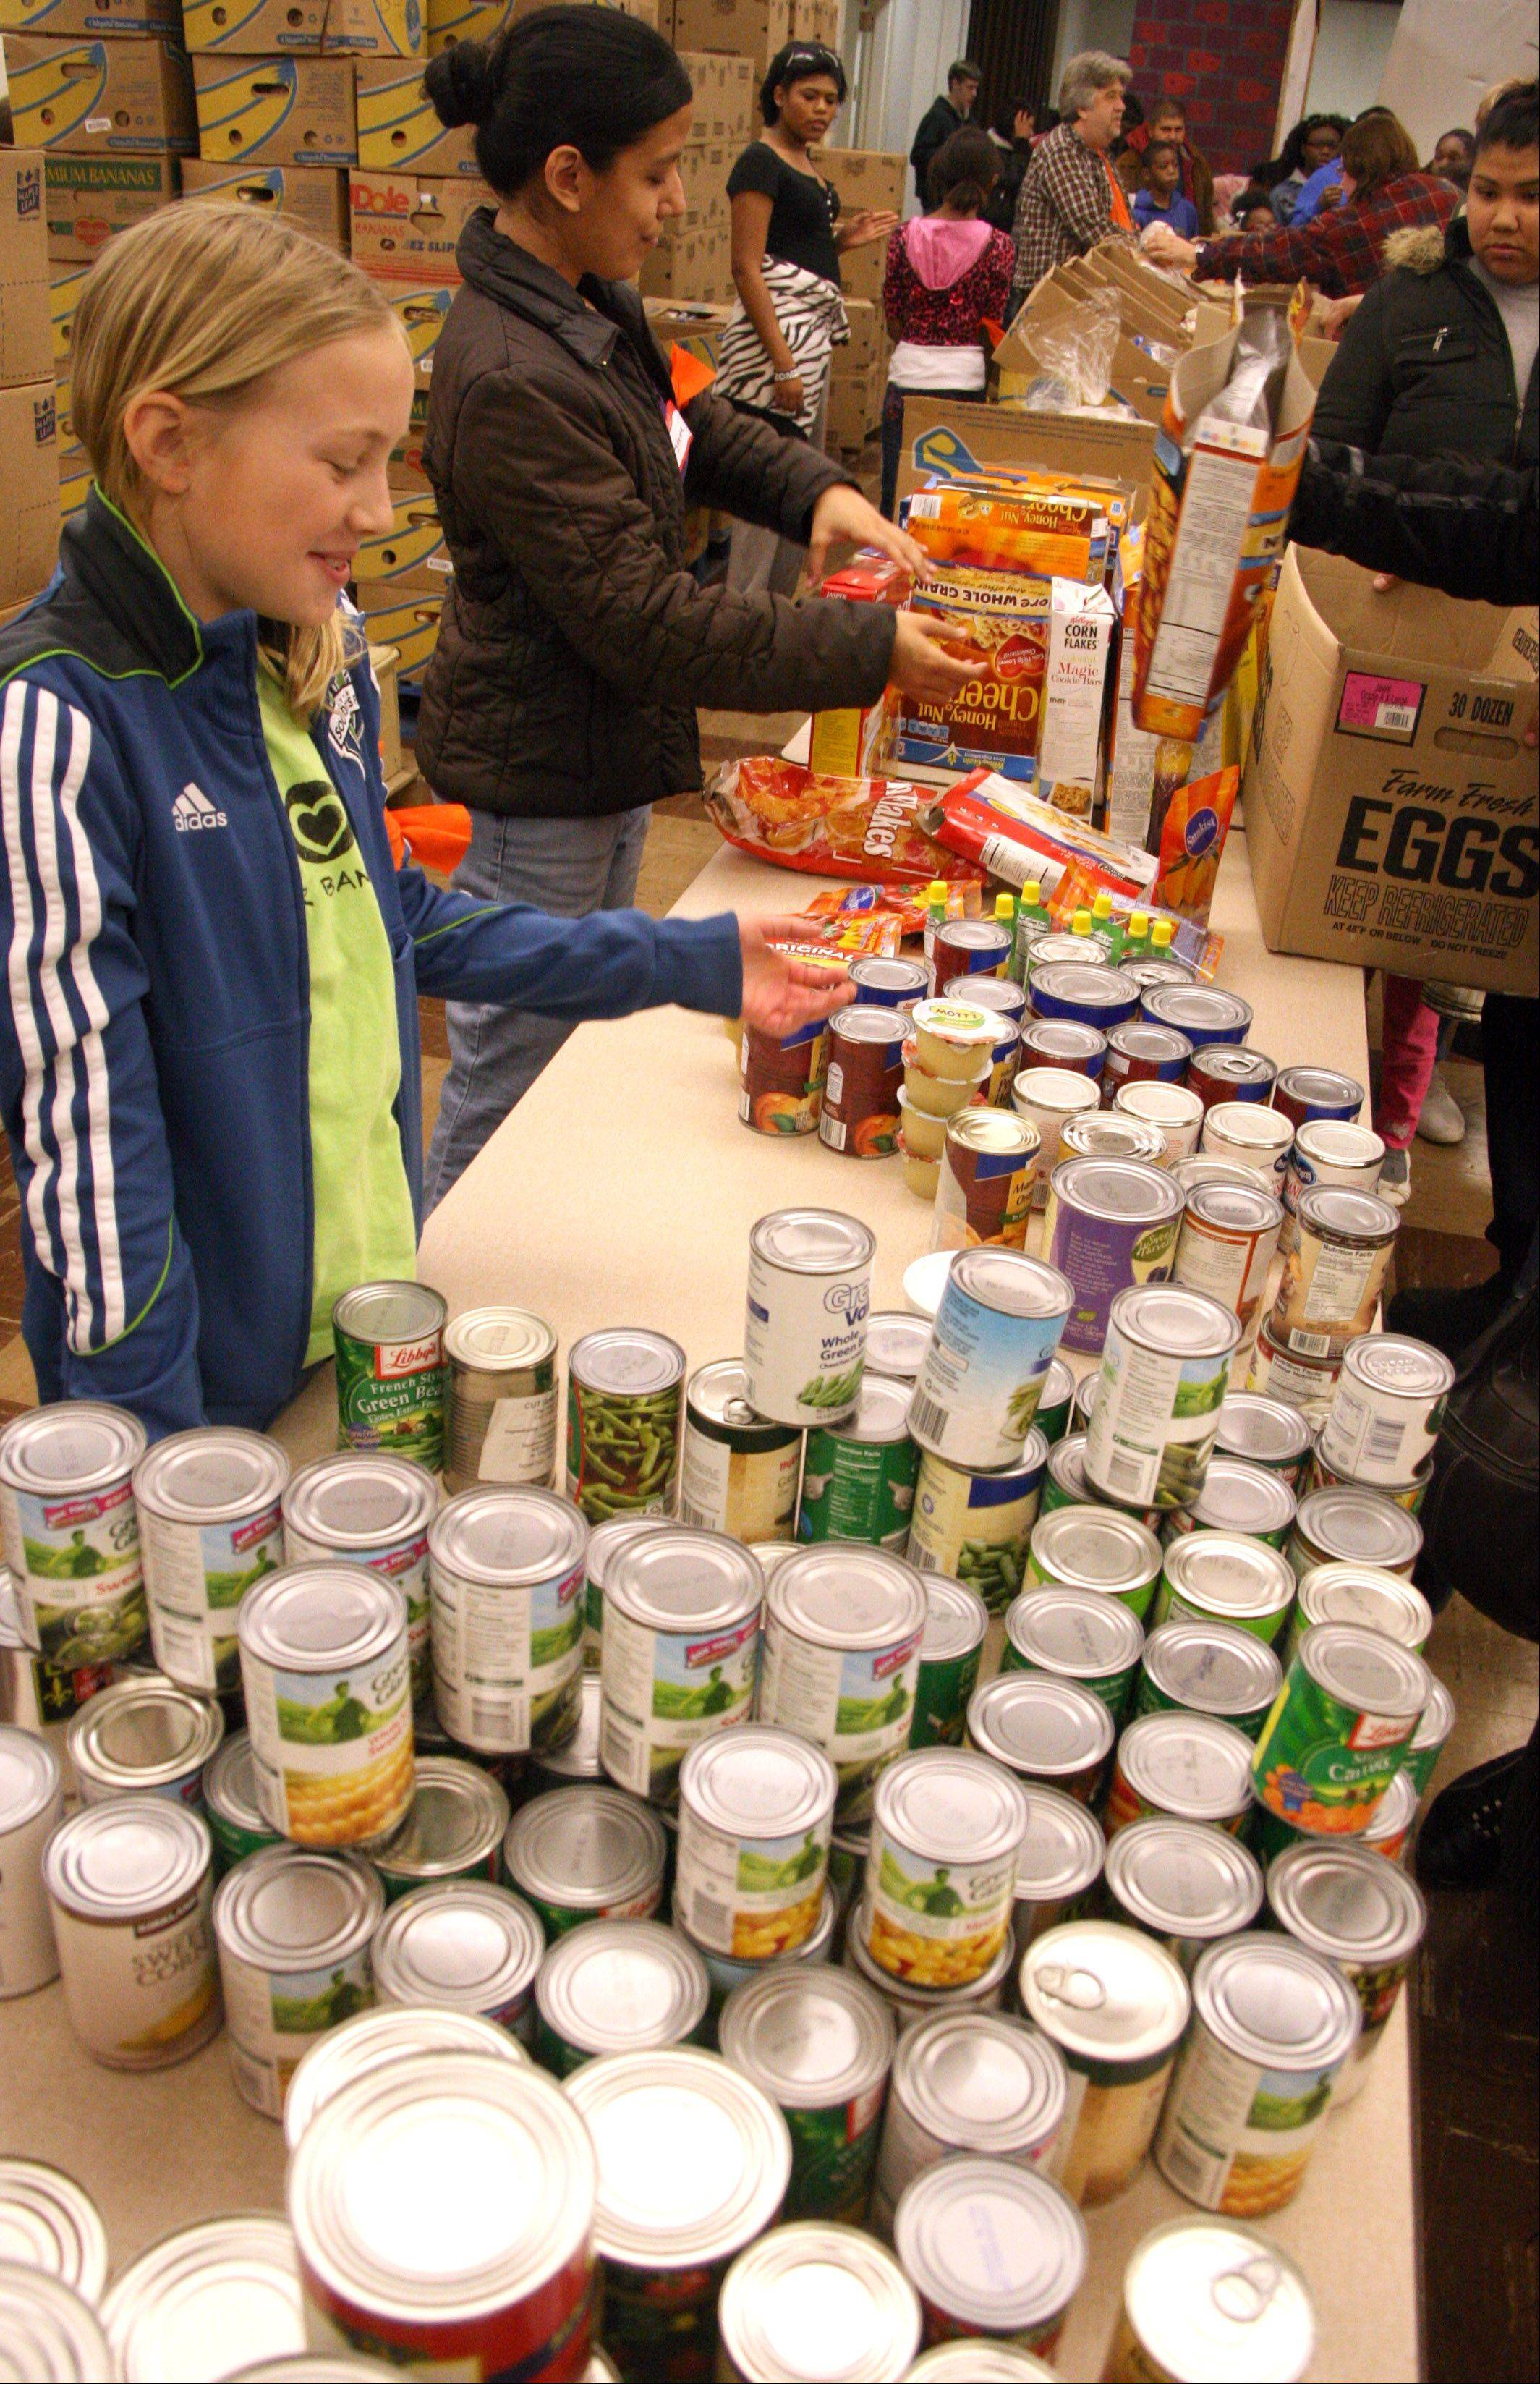 Rachel Lawrence, 11, left, of Geneva and Magdalena Plazola of Elgin, center, volunteer their services offering canned food at the First United Methodist Church as part of last year's Love Elgin Day event.